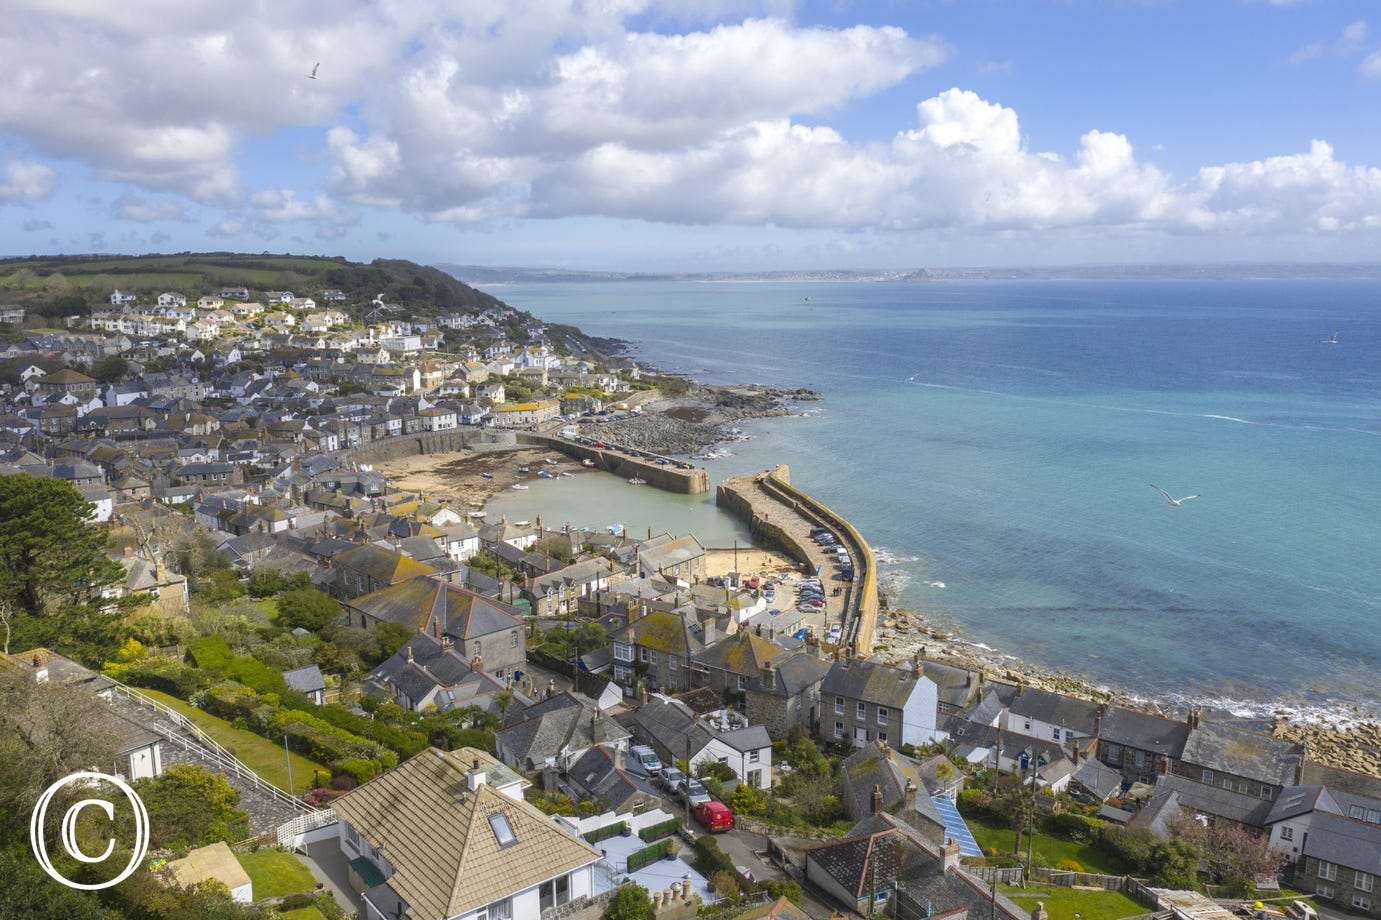 Aerial photo of Mousehole